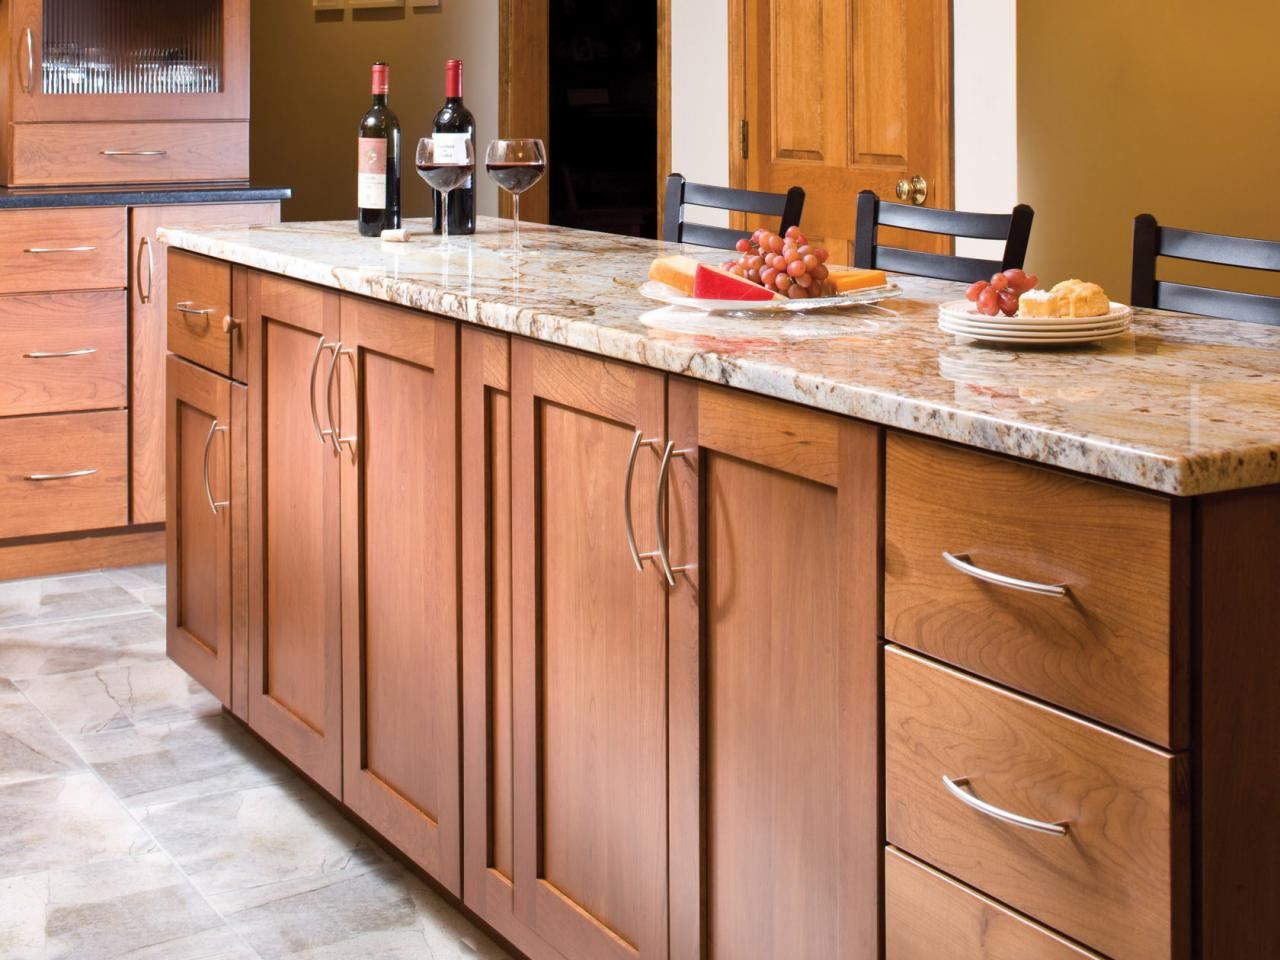 Best Guide To Match Your Countertop With Kitchen Cabinets